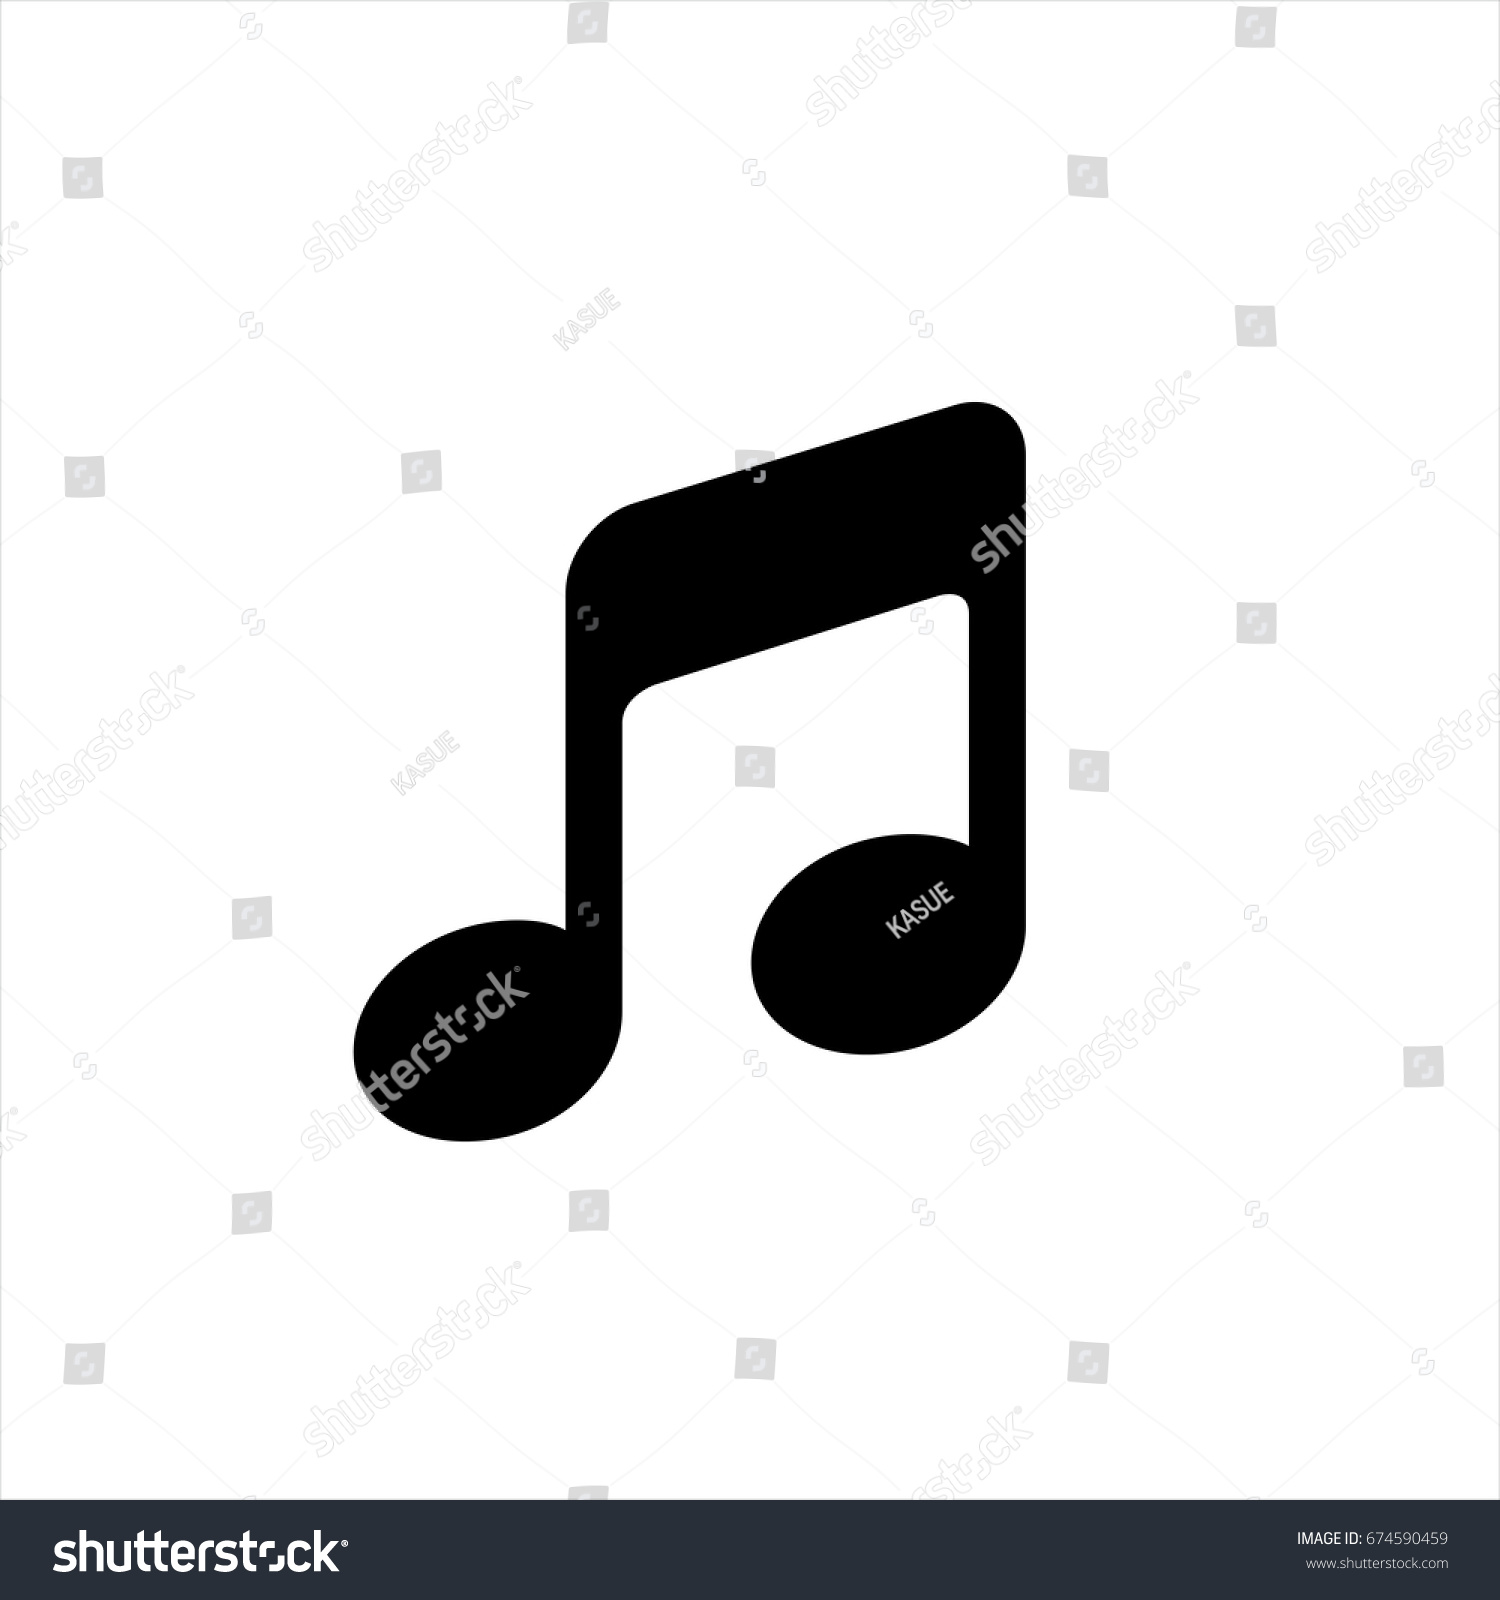 music note icon trendy flat style stock vector 674590459